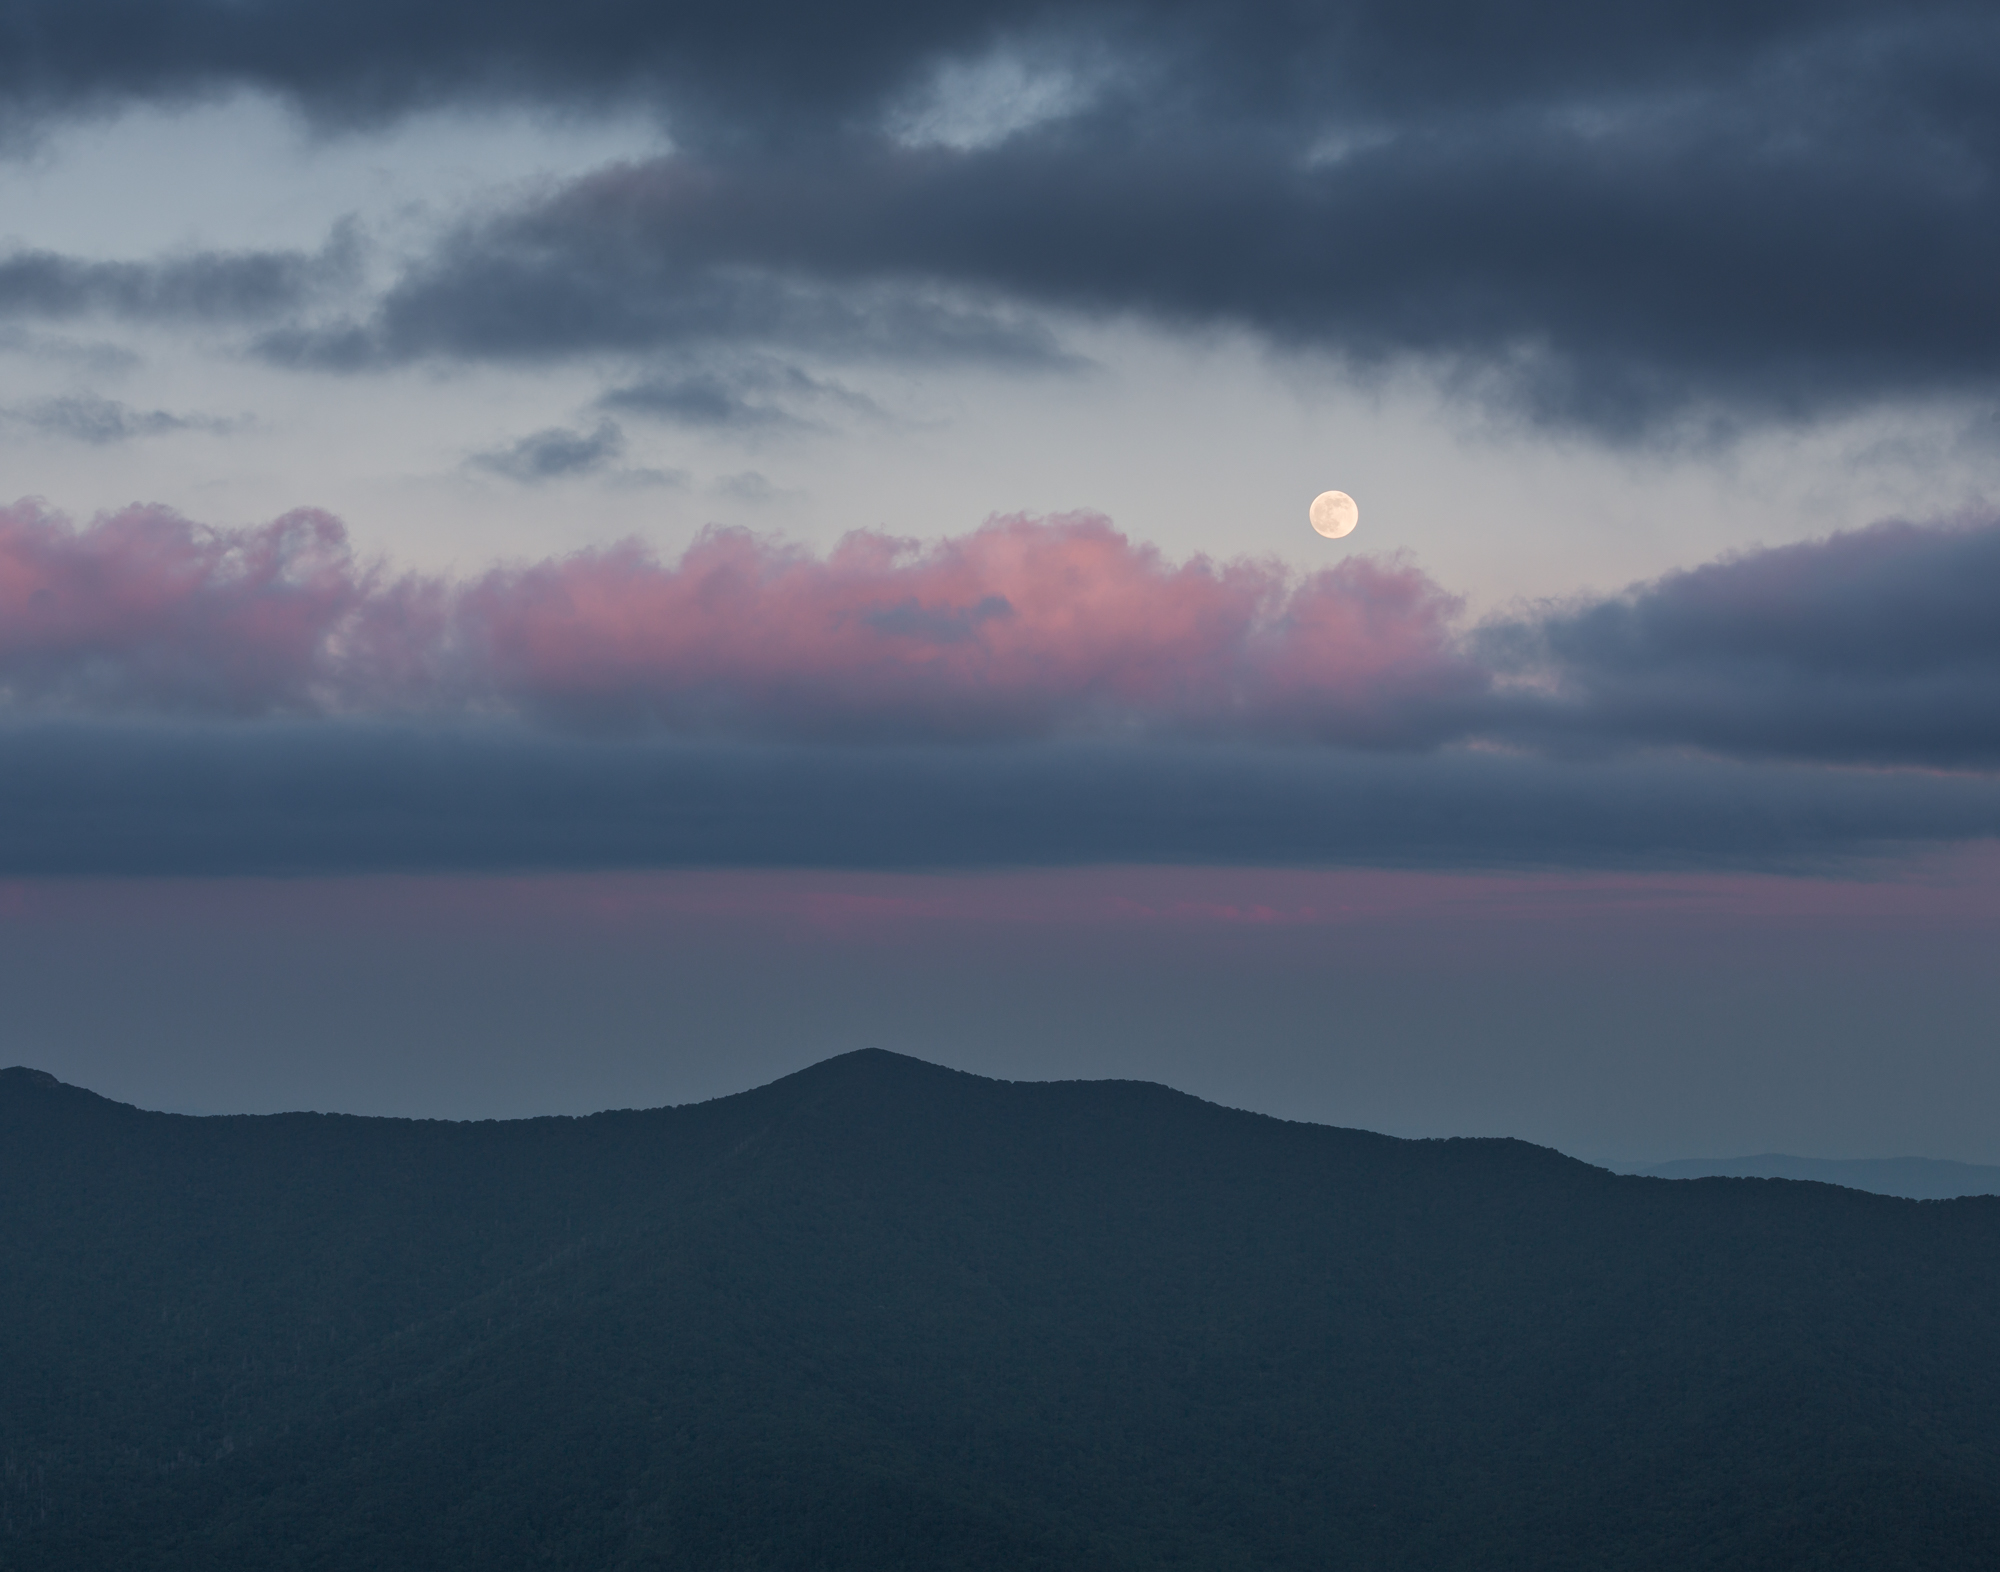 18. Blue Ridge Parkway, North Carolina